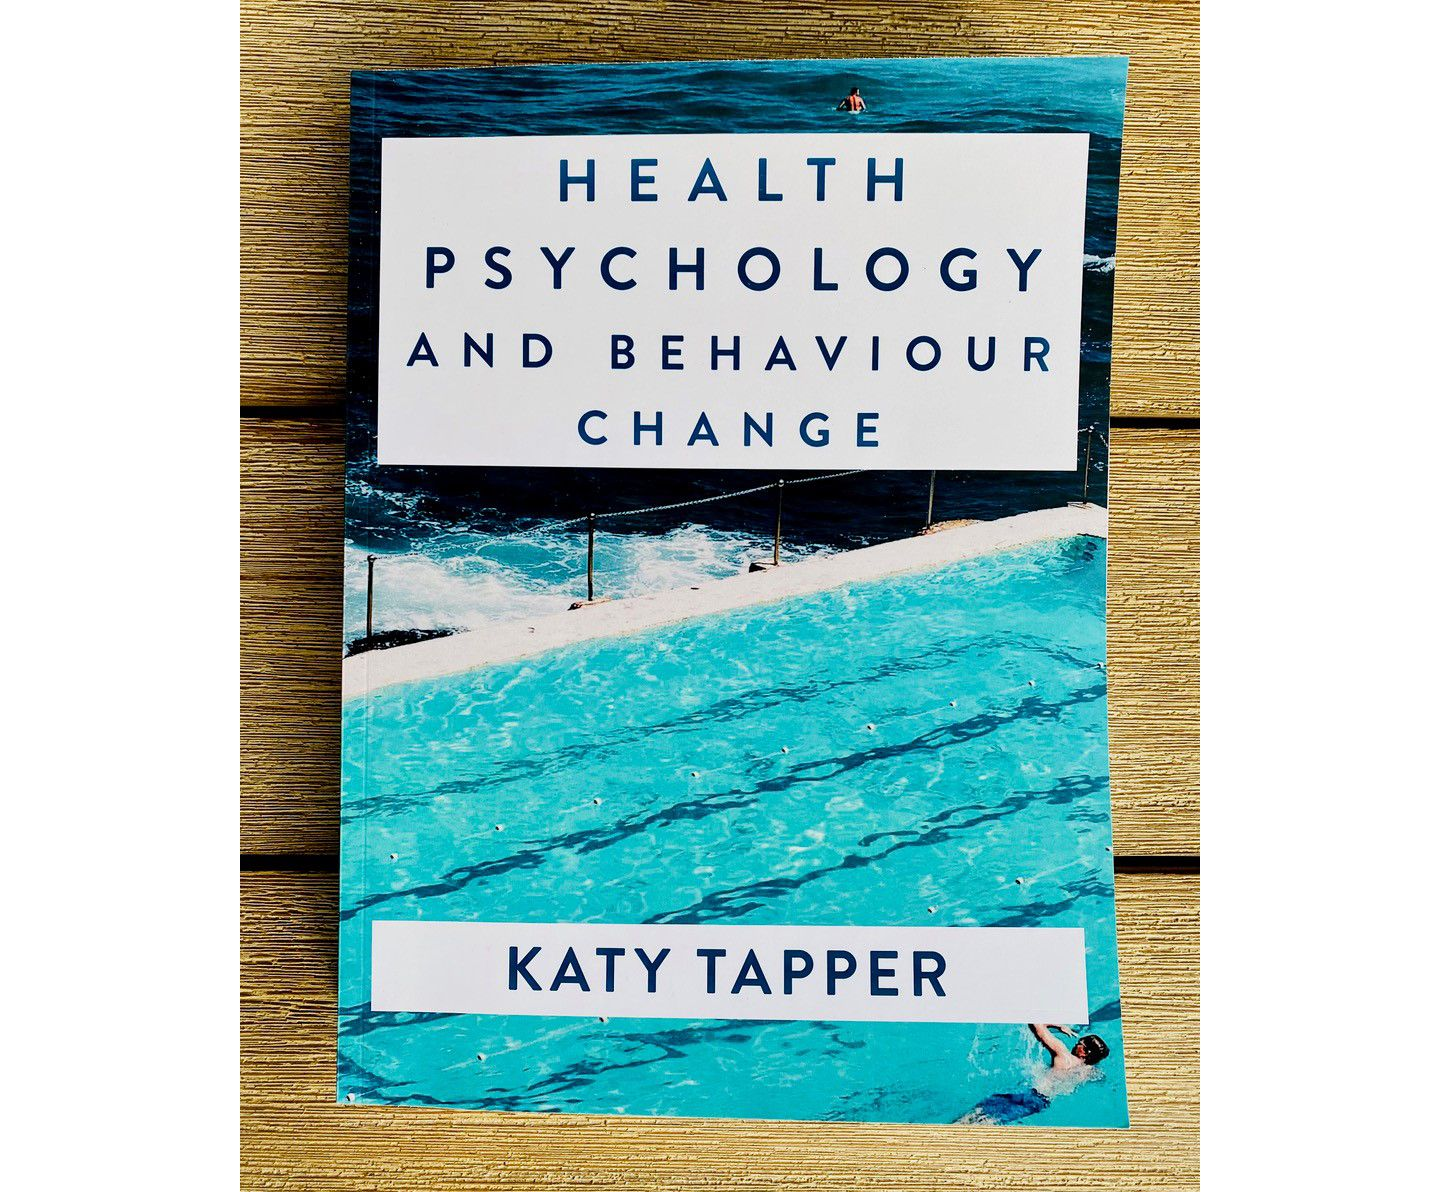 Book cover showing a swimming pool built right beside the sea. Someone is swimming in the pool, while a second person can be seen in the distance in the sea,